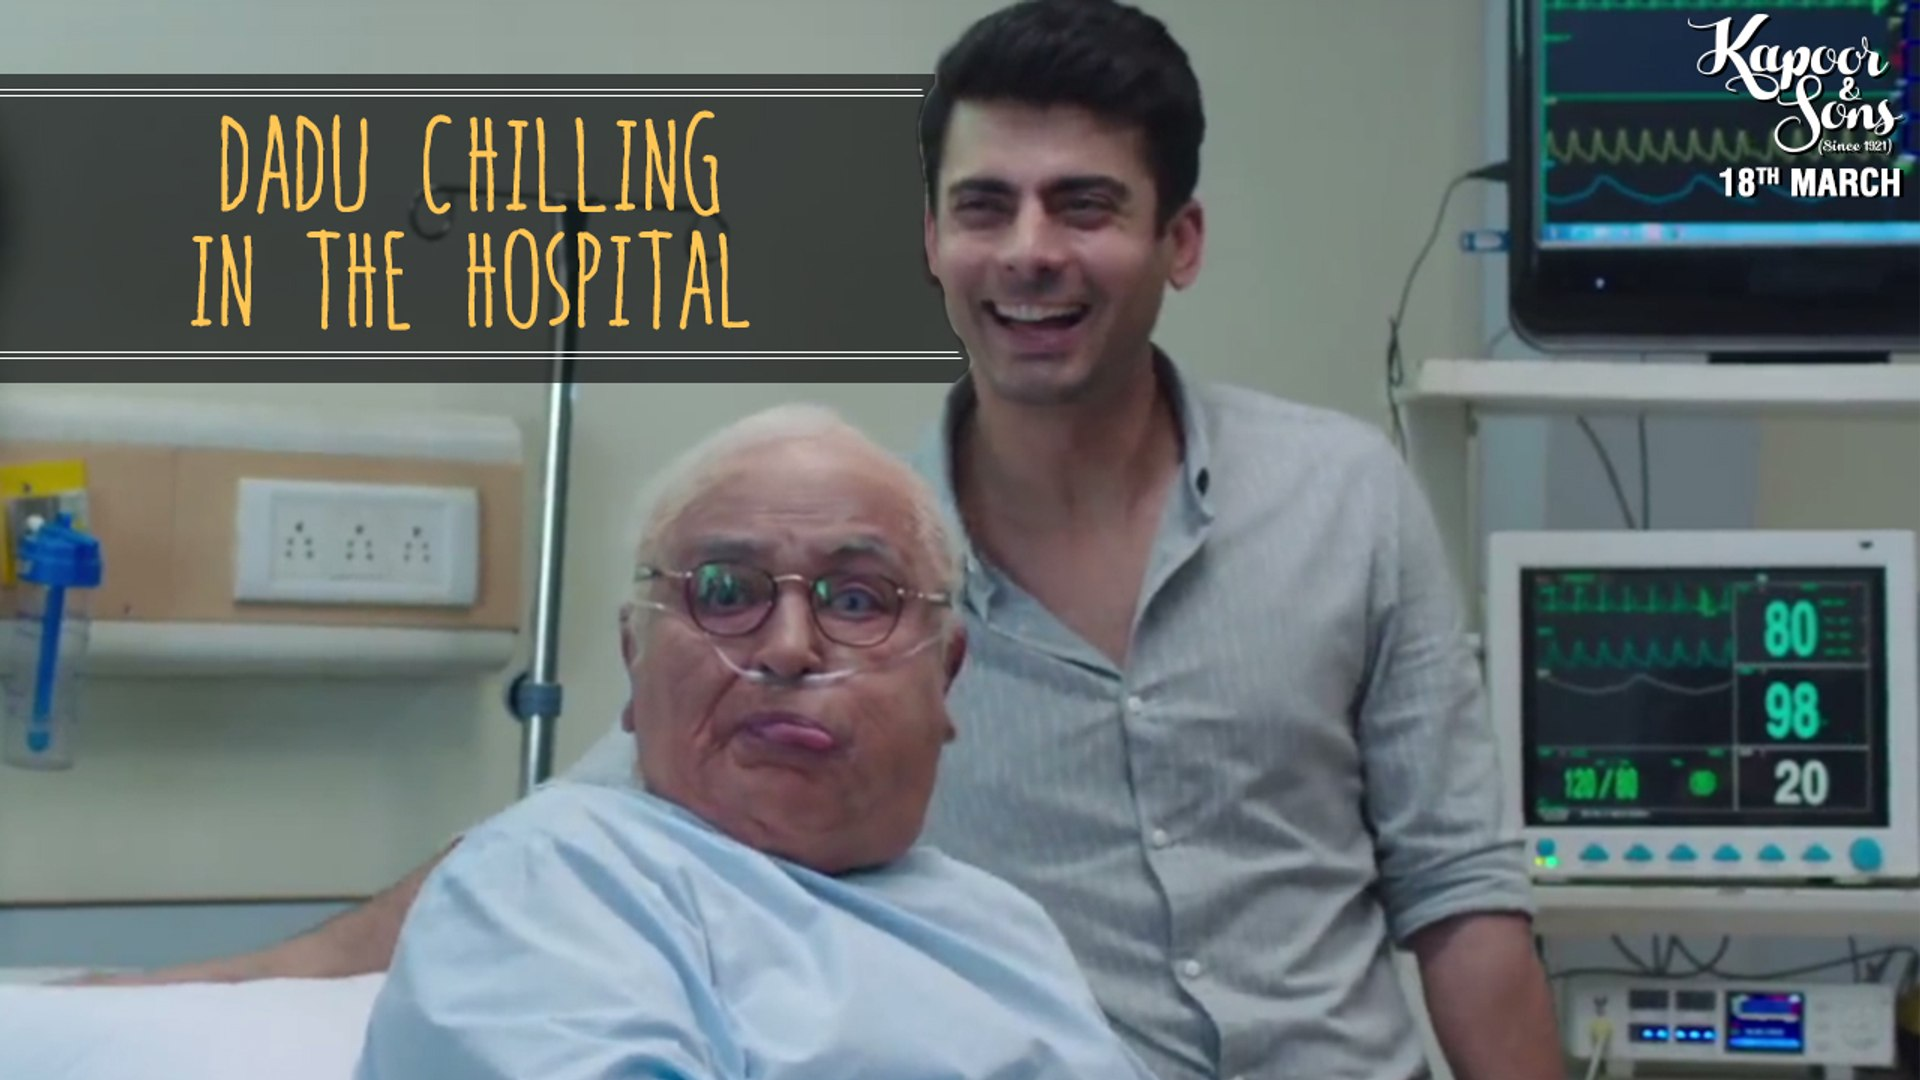 Kapoor & Sons | Dadu Chilling In The Hospital | Dialogue Promo | Rishi Kapoor, Fawad Khan